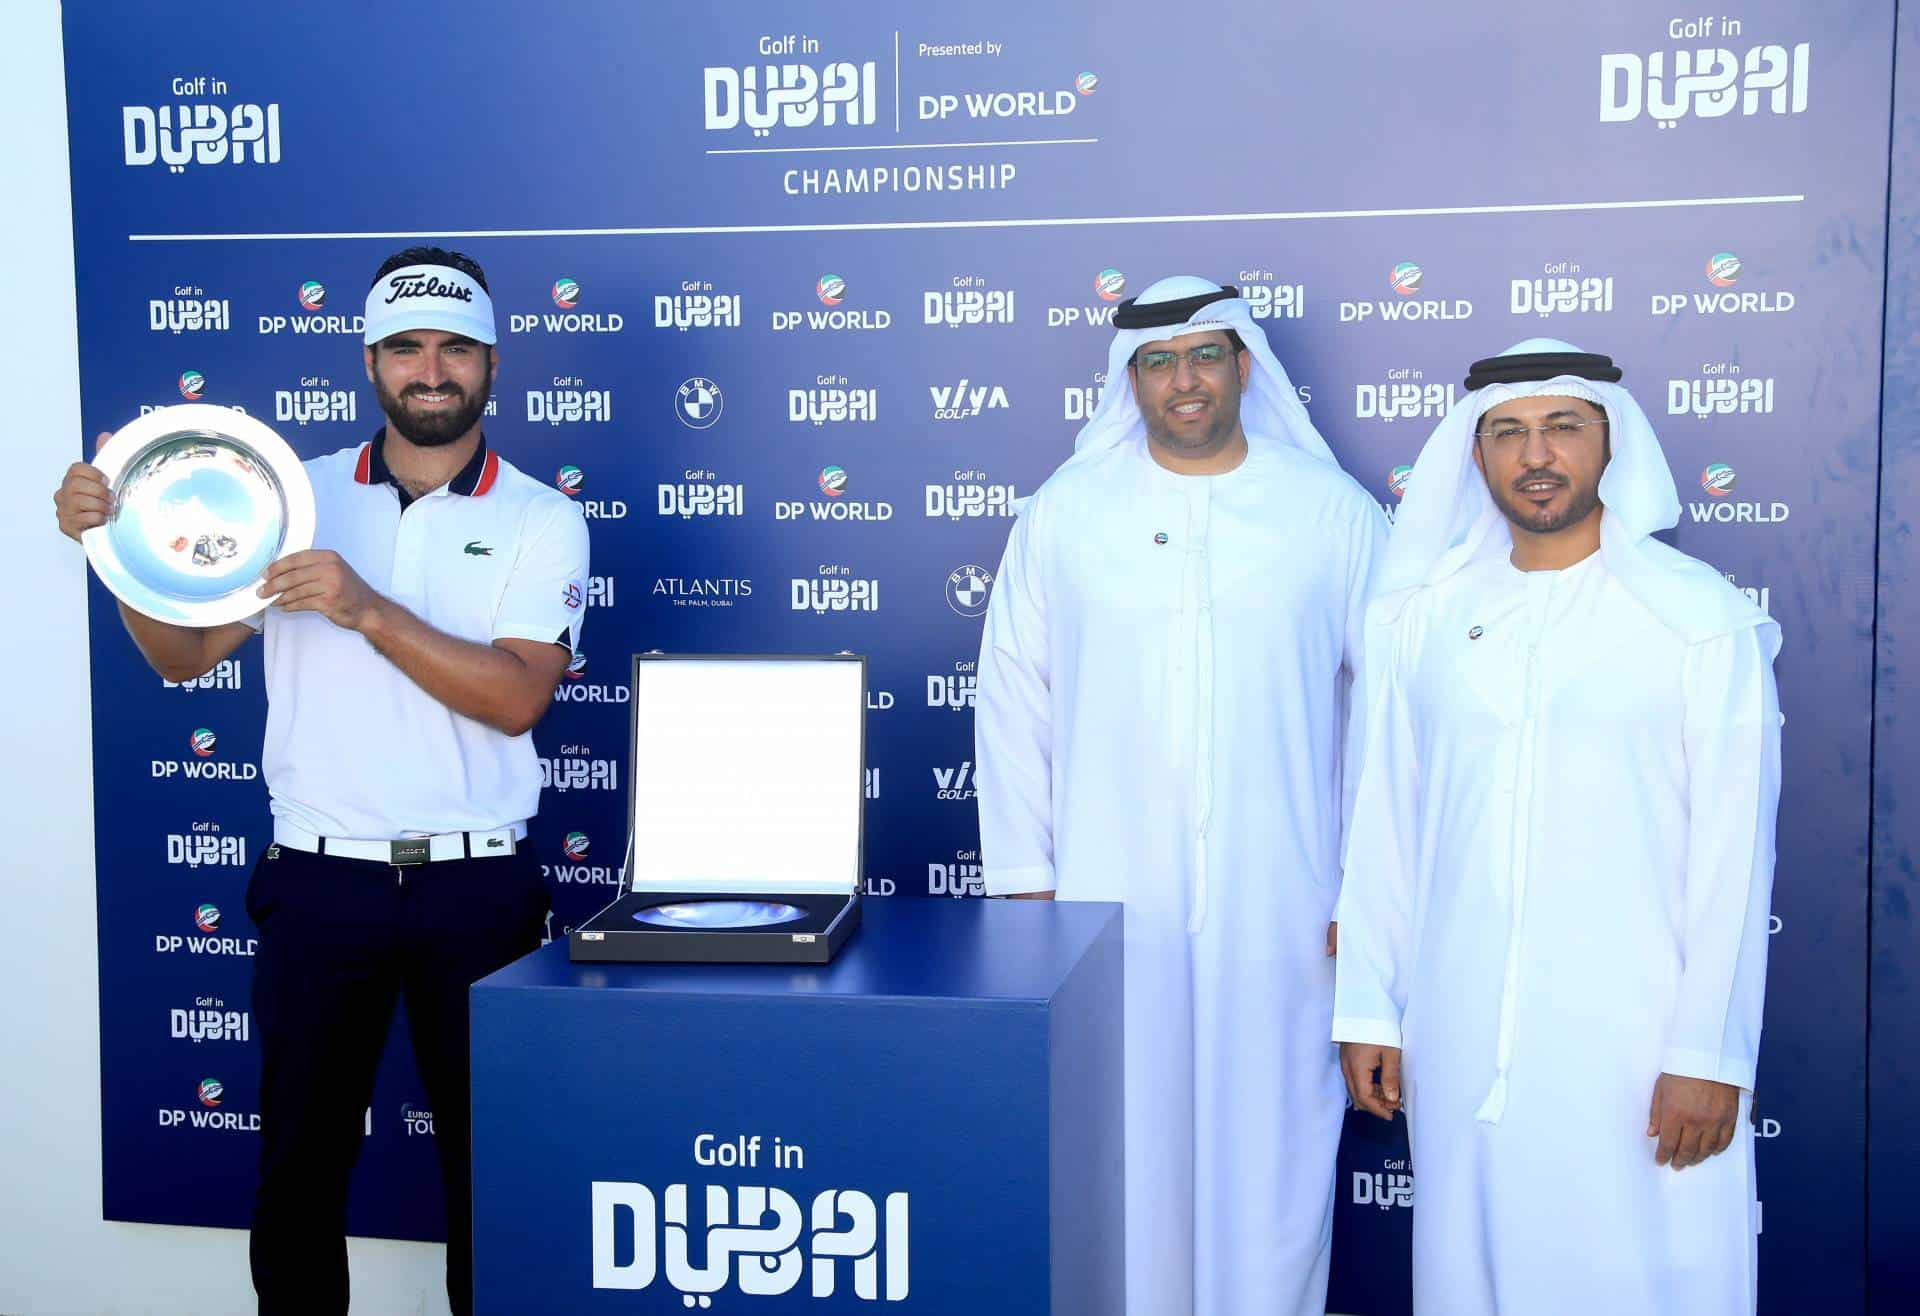 Golf in Dubai Championship presented by DP World